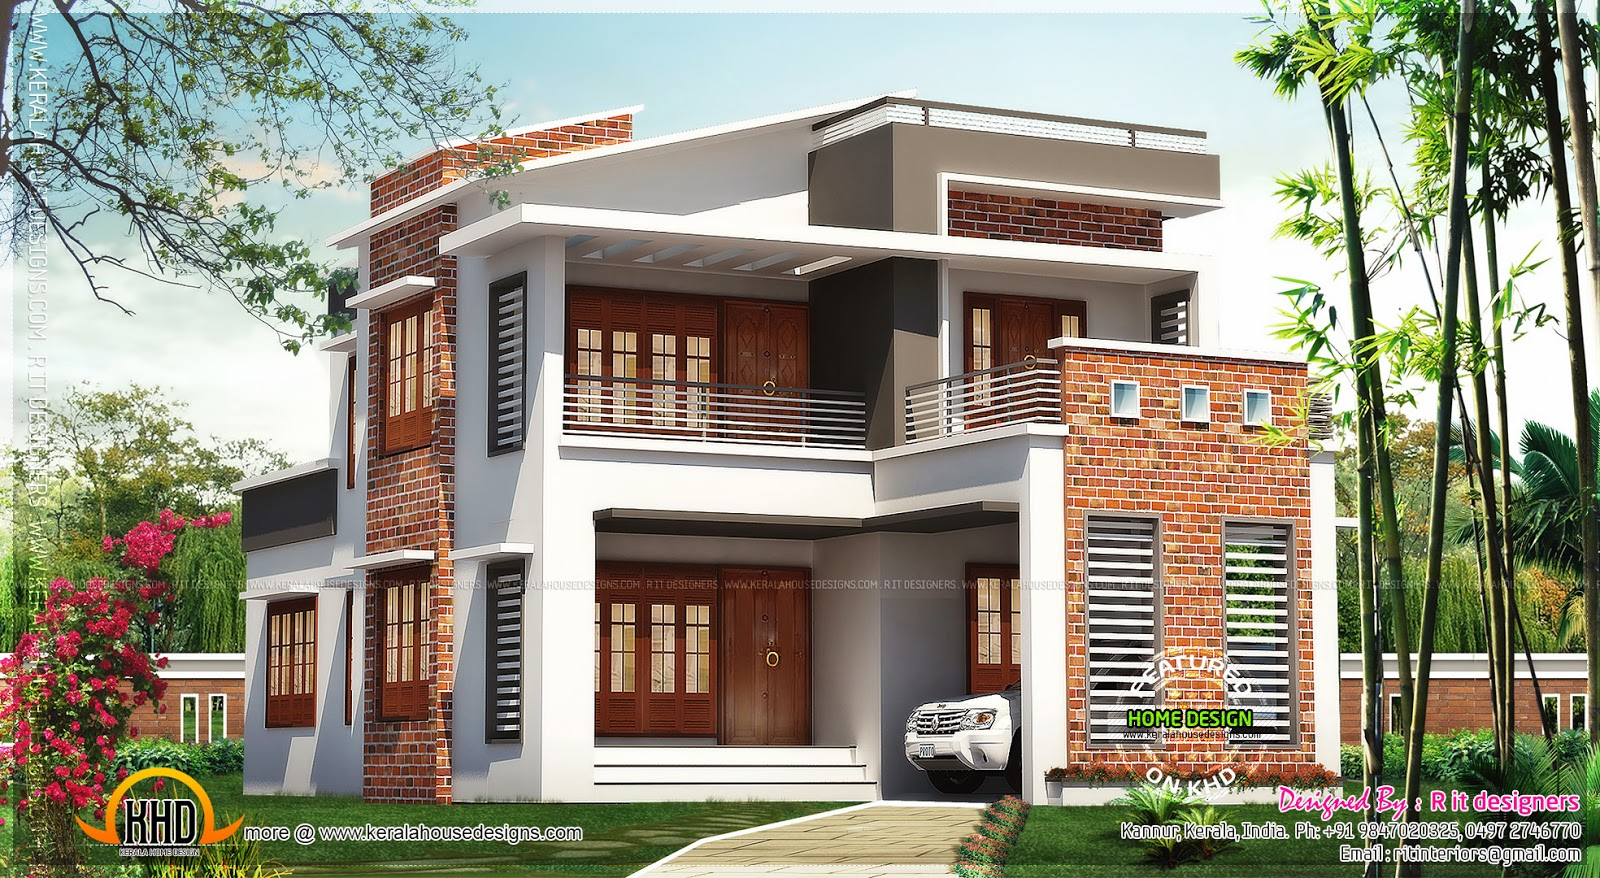 Brick mix house exterior design kerala home design and for House exterior design pictures in indian